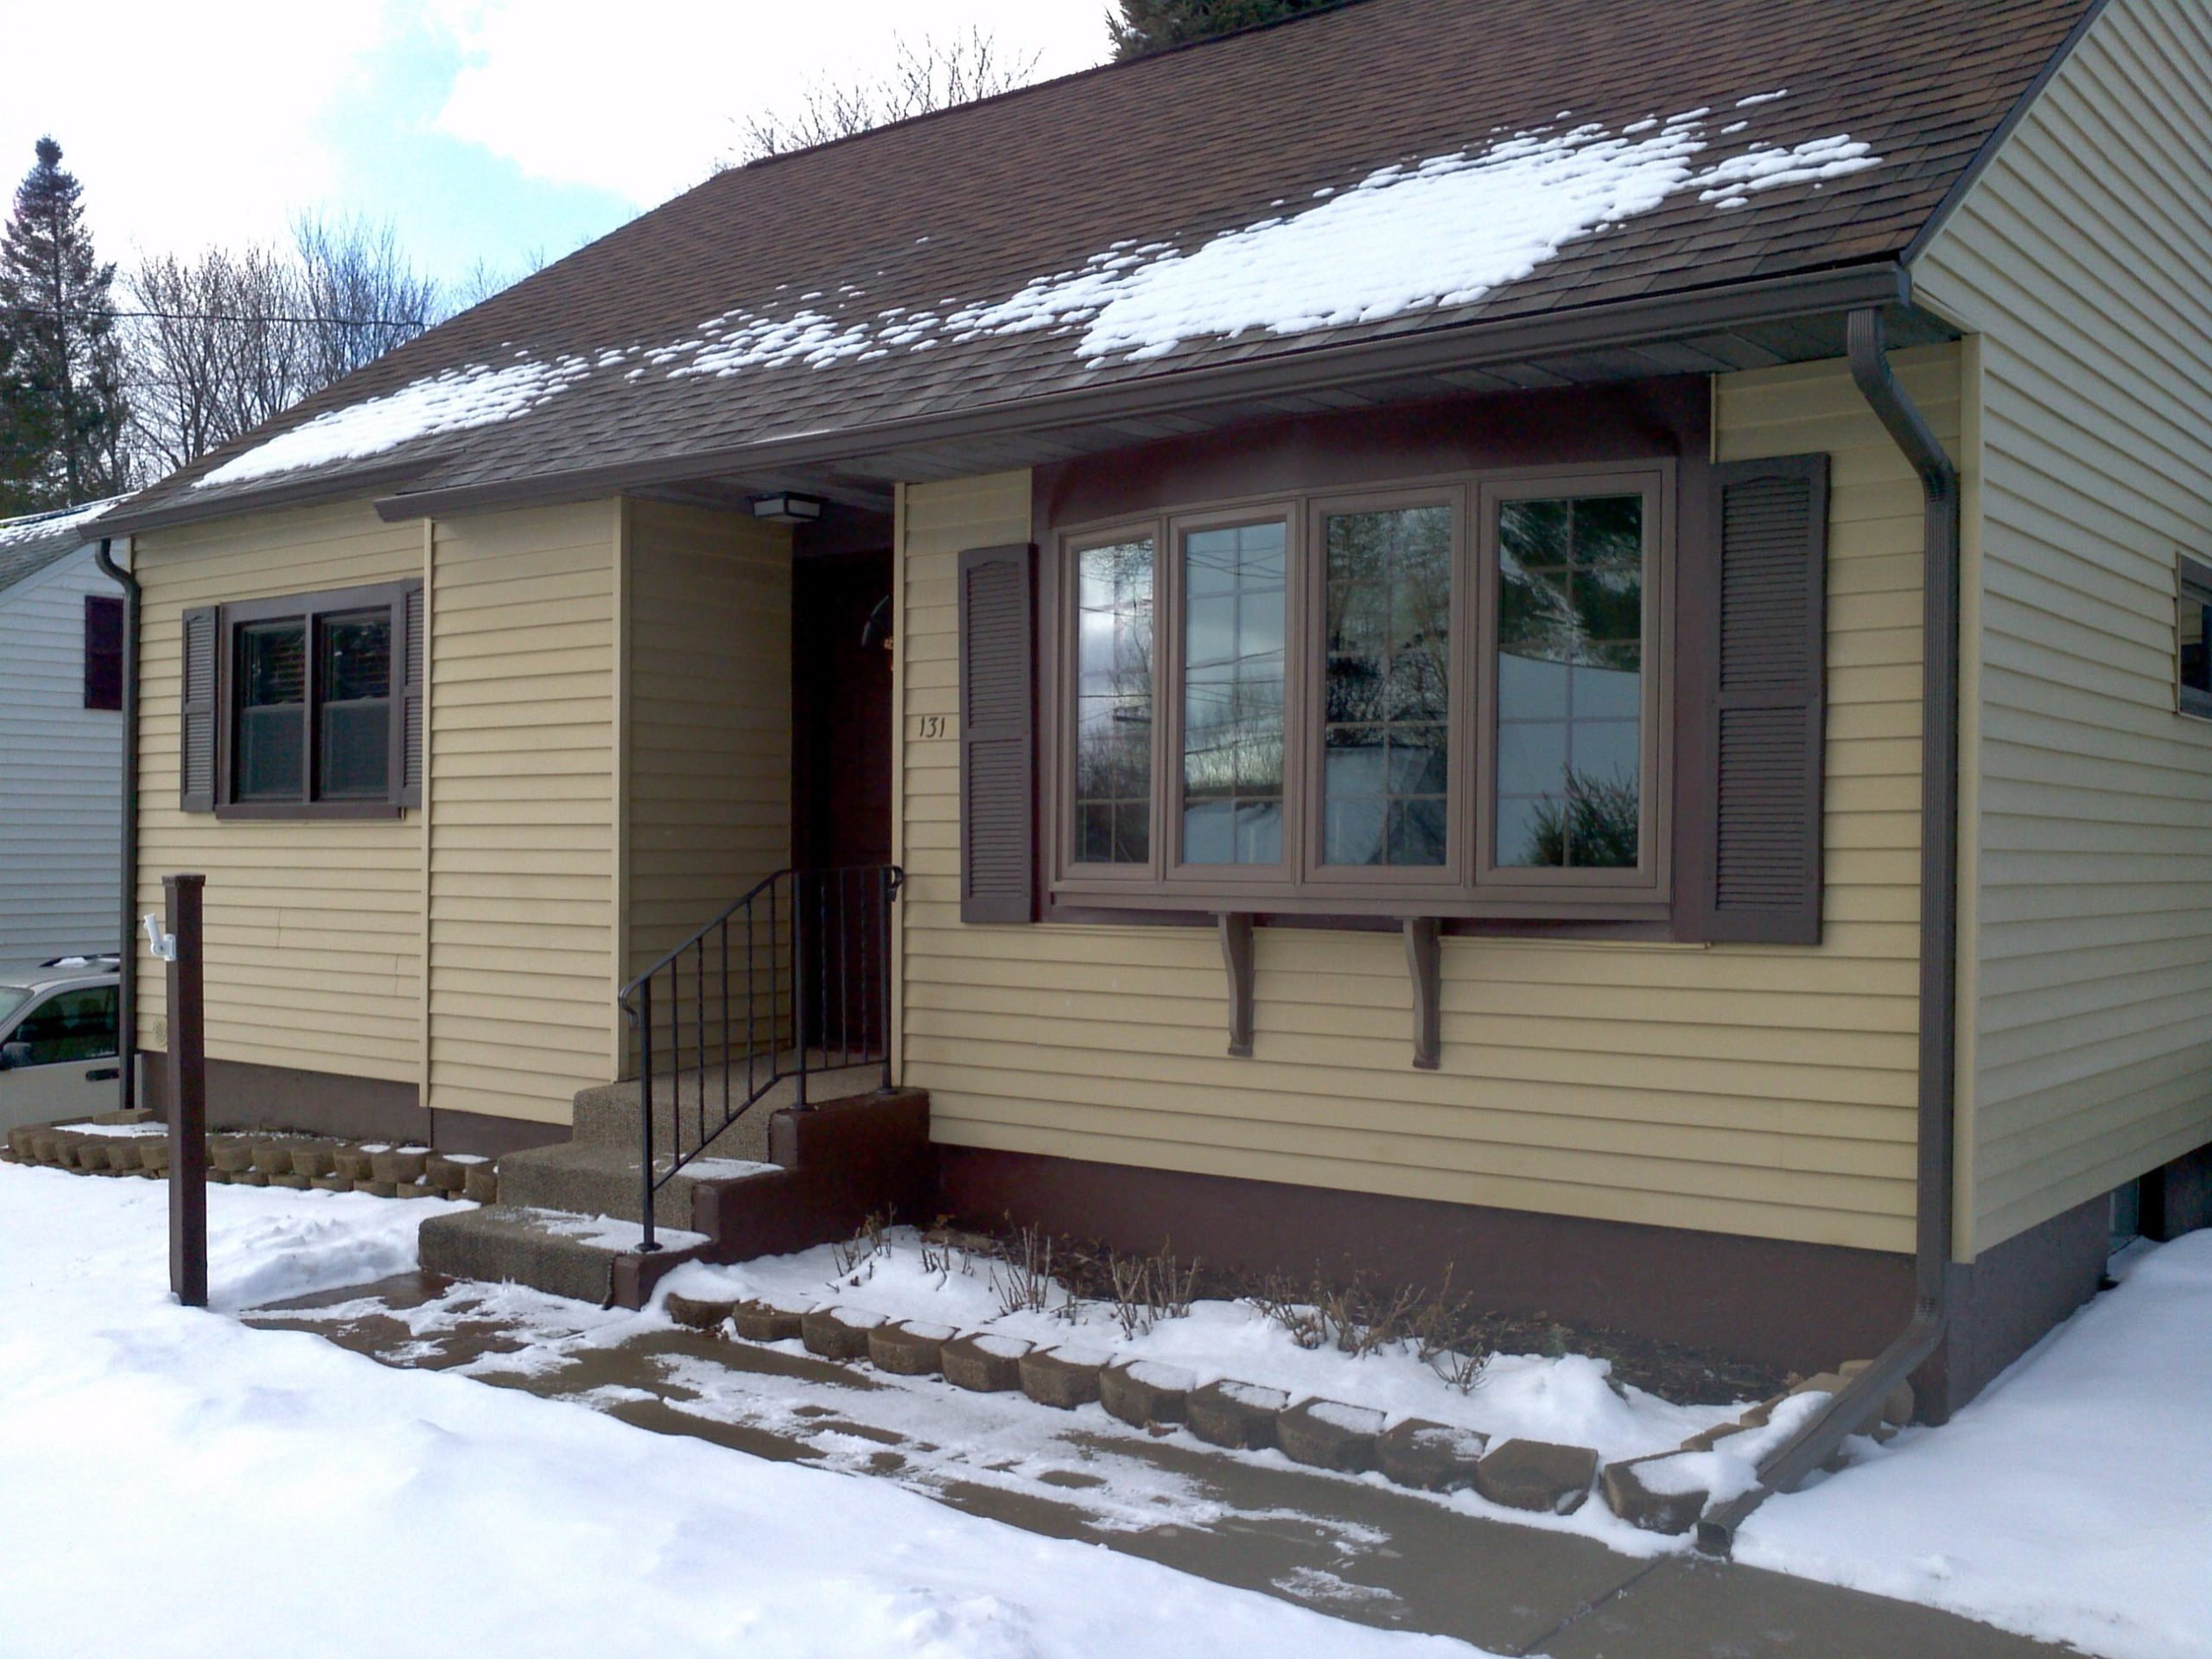 Protect Your Home This Winter with Vinyl Replacement Windows or Energy Efficient Entry Door